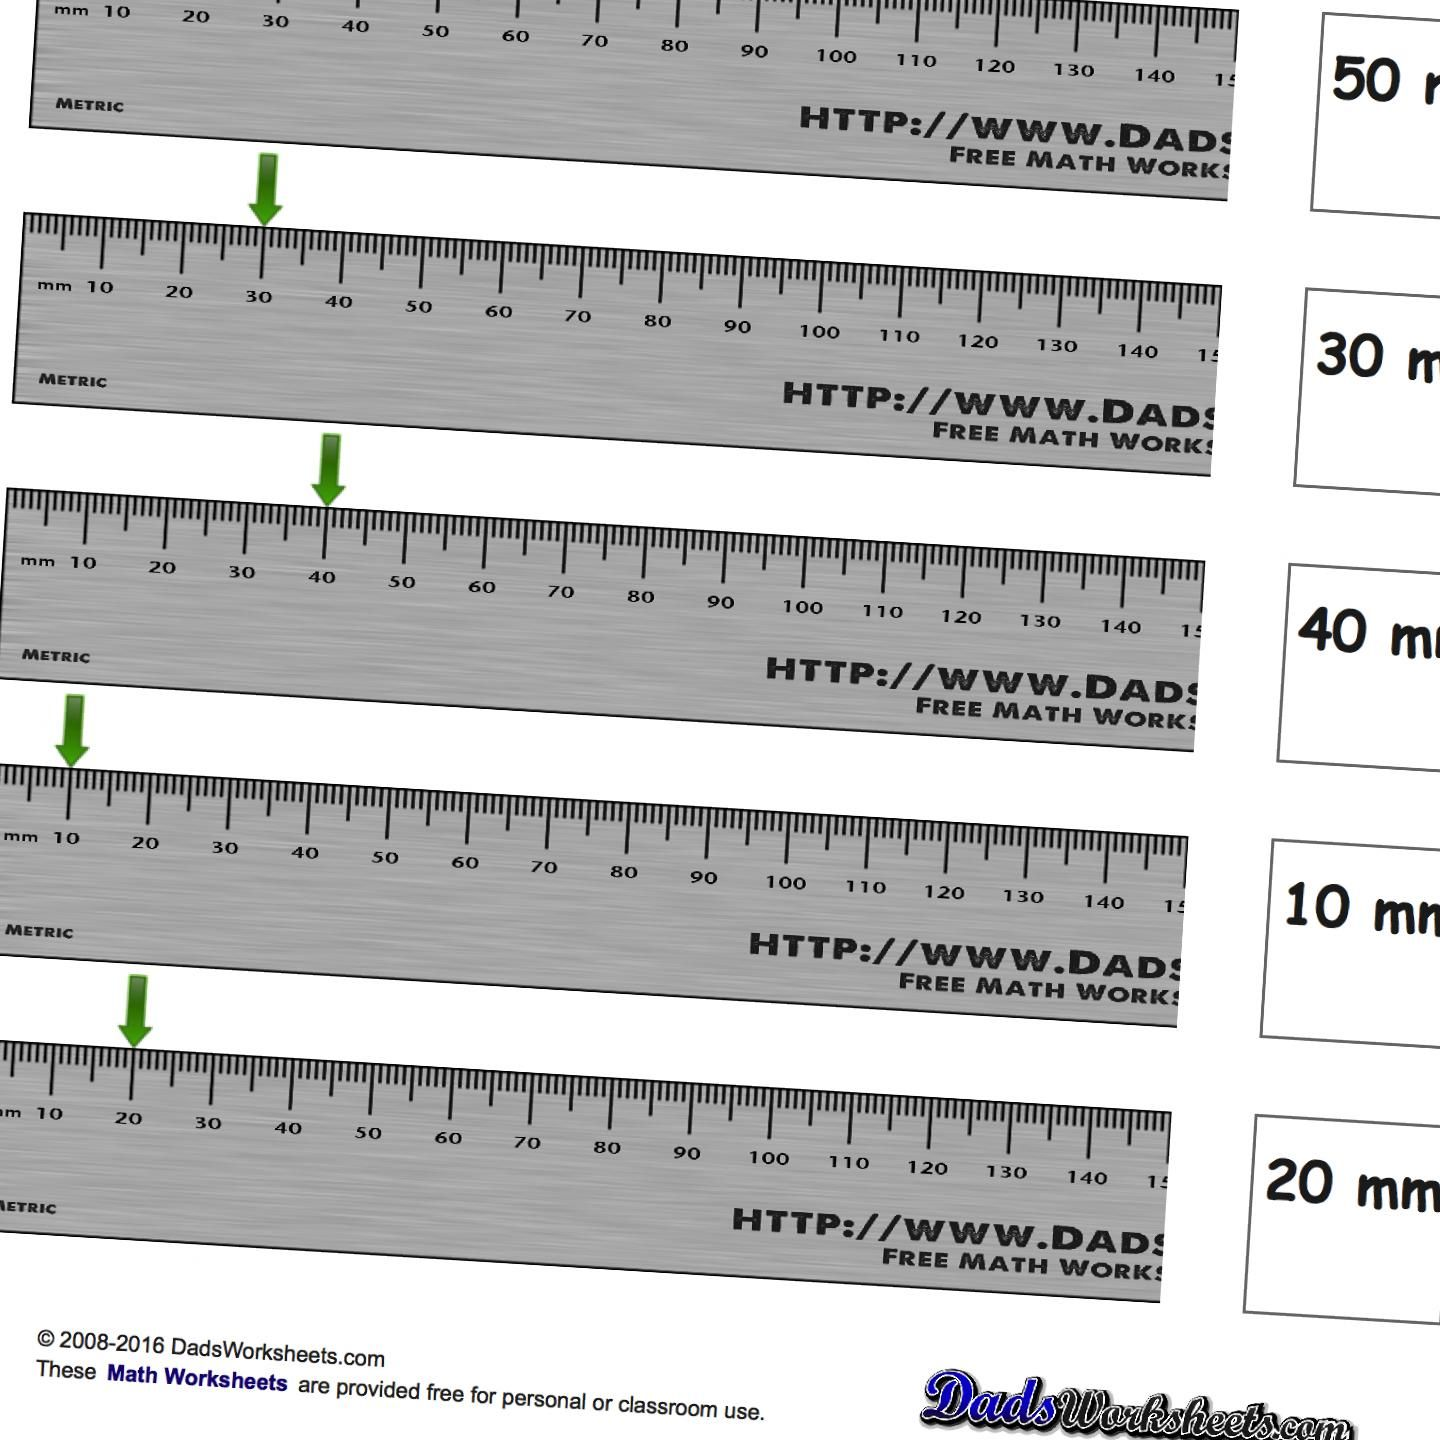 Metric Measurement This Page Contains Links To Free Math